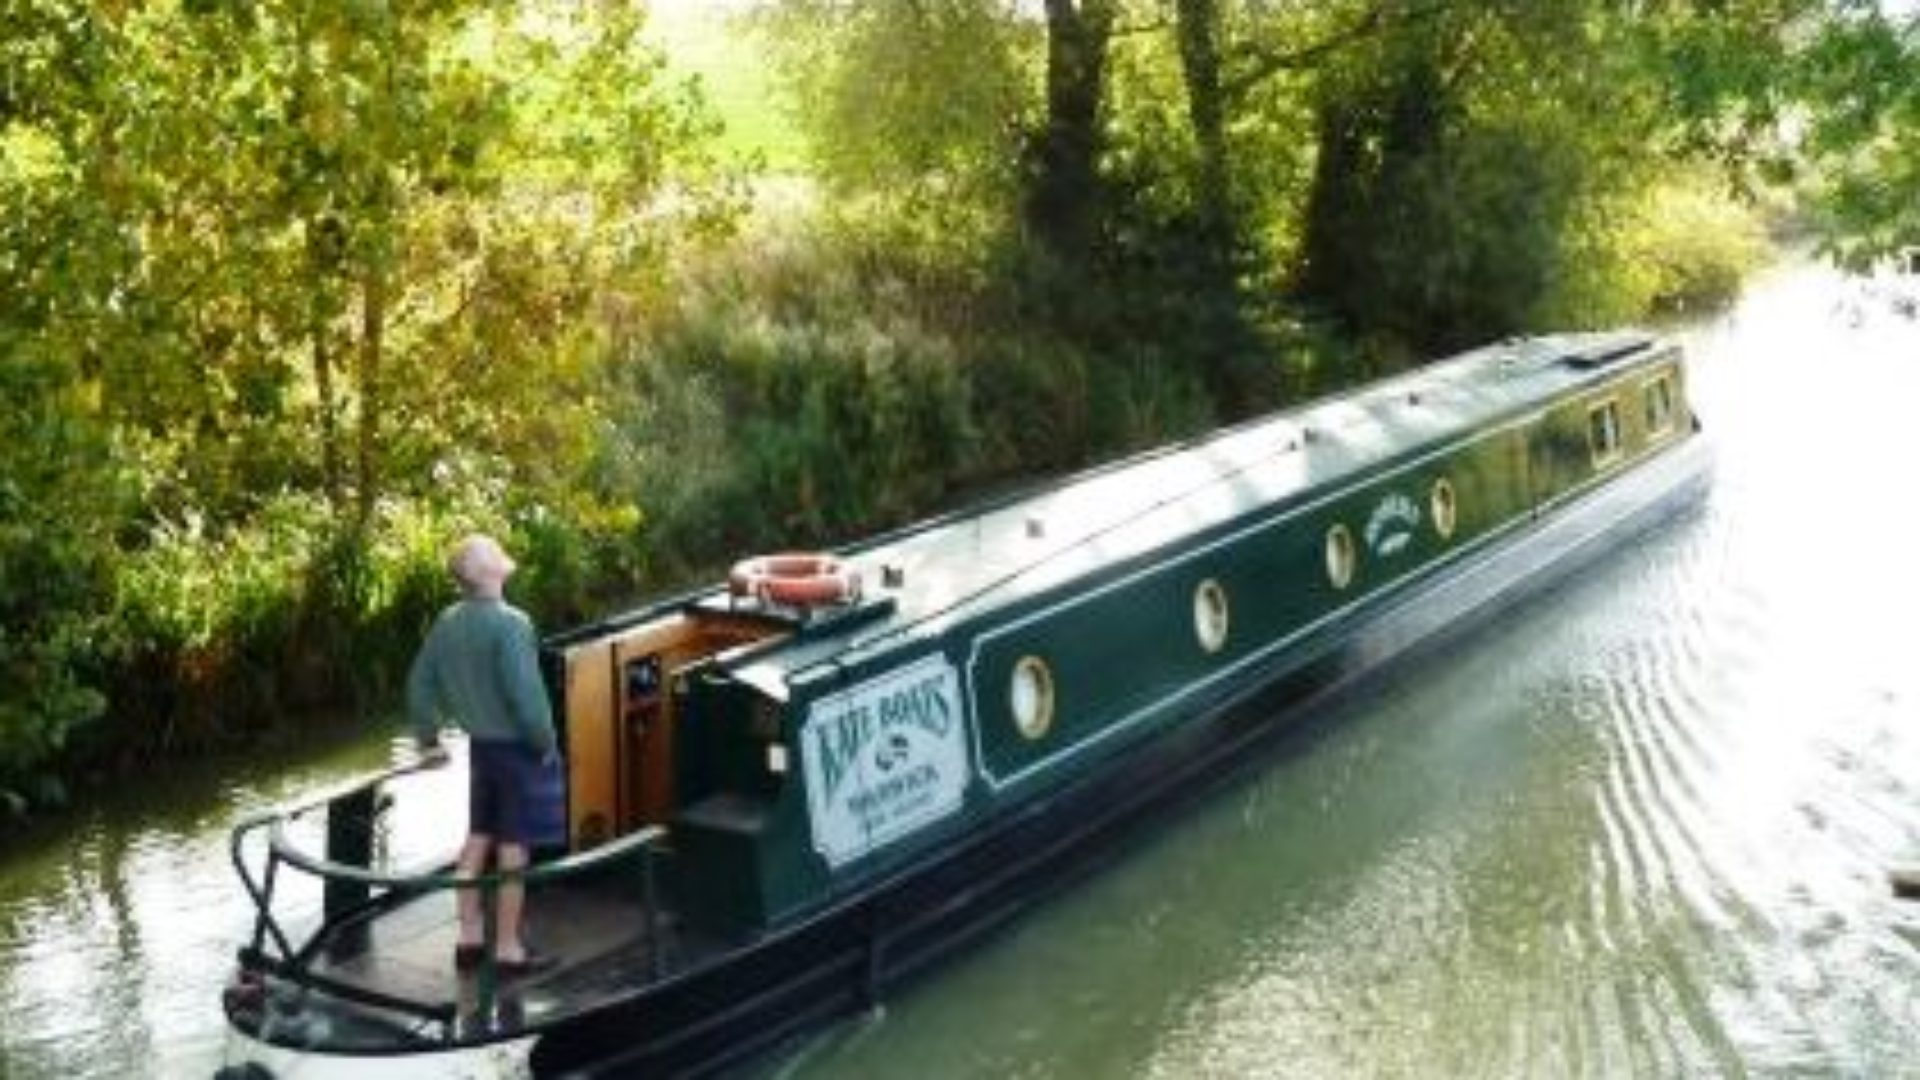 Experience a Magic Canal Boat Holiday